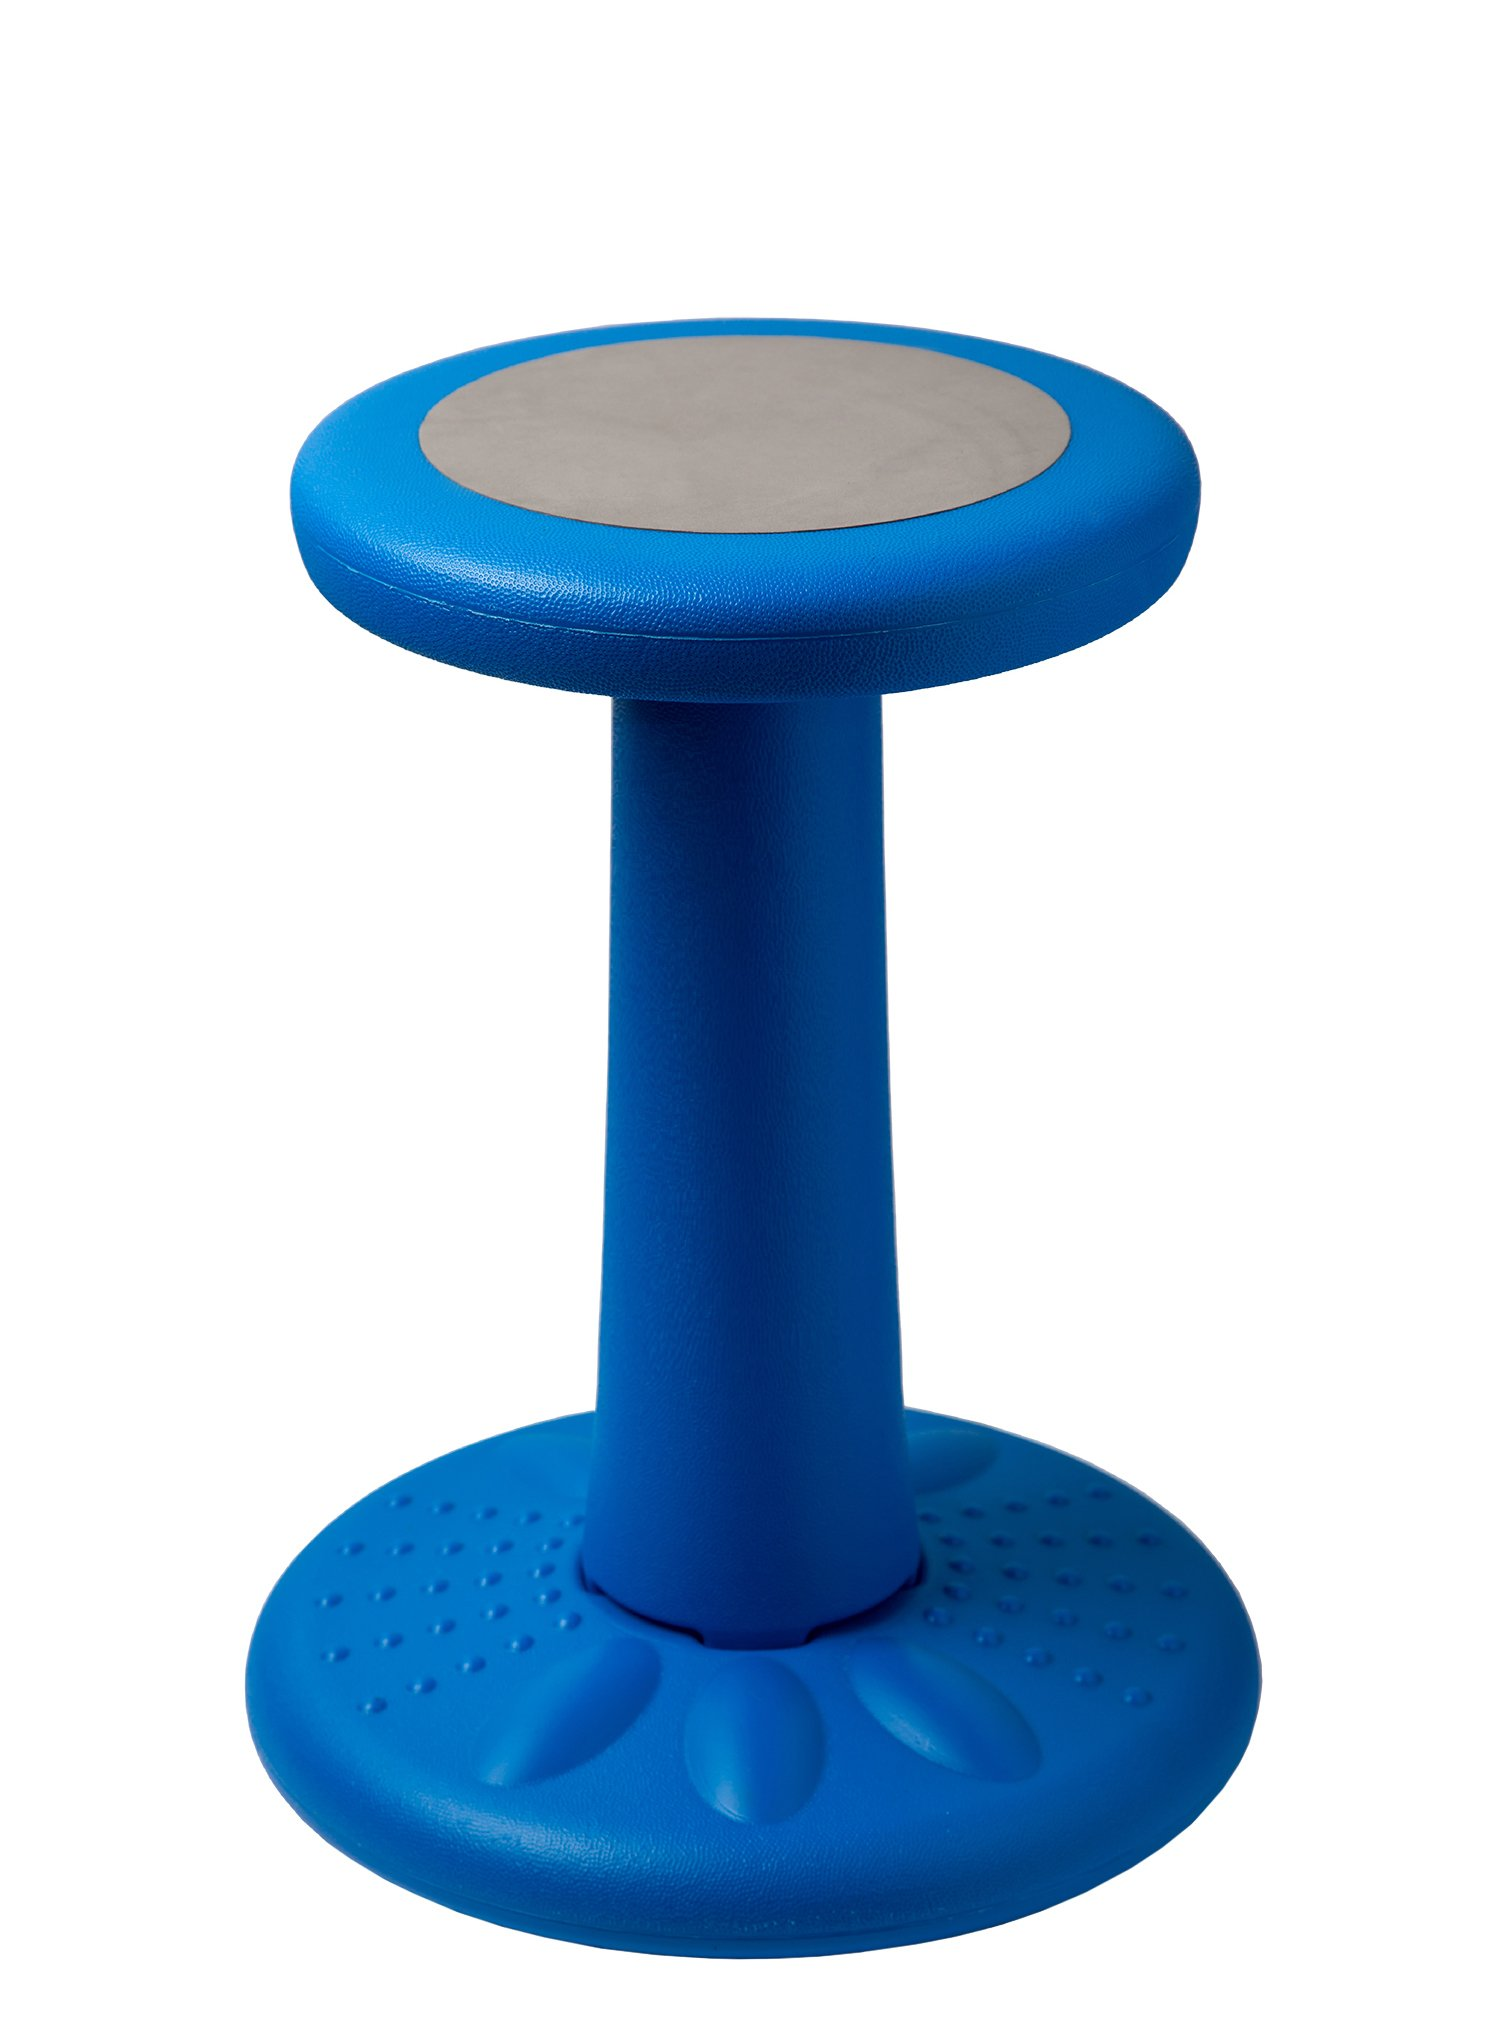 Active Kids Chair by Studico - Wobble Chairs Juniors/Pre-Teens (Grades 3-7) - Children Who Can't Sit Still - Great 17'' Wobble Chair Kids ADD/ADHD - Corrects Posture | Blue - Age Range 7-12y by Comfify